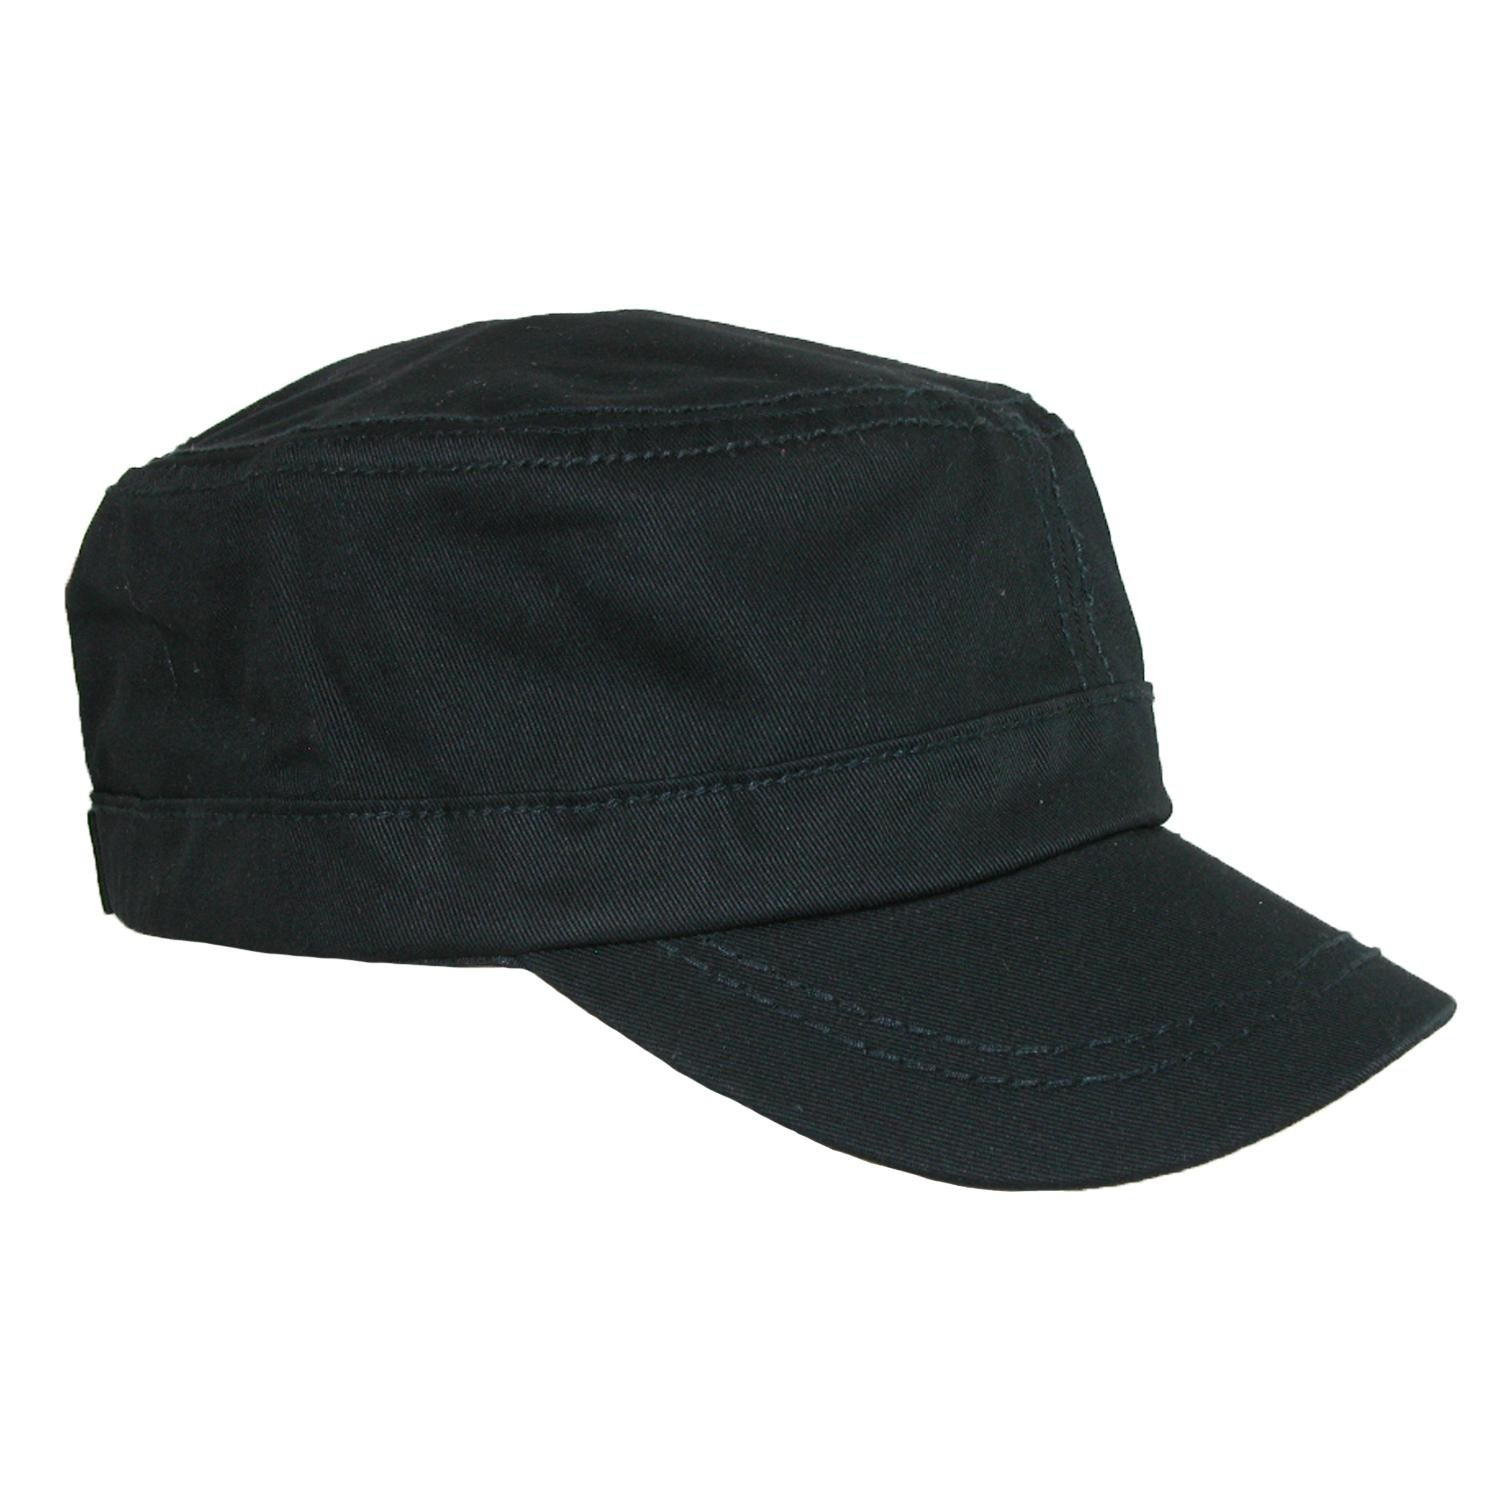 Something-Special-Men's-Cotton-Basic-Solid-Military-Cadet-Hat.jpg